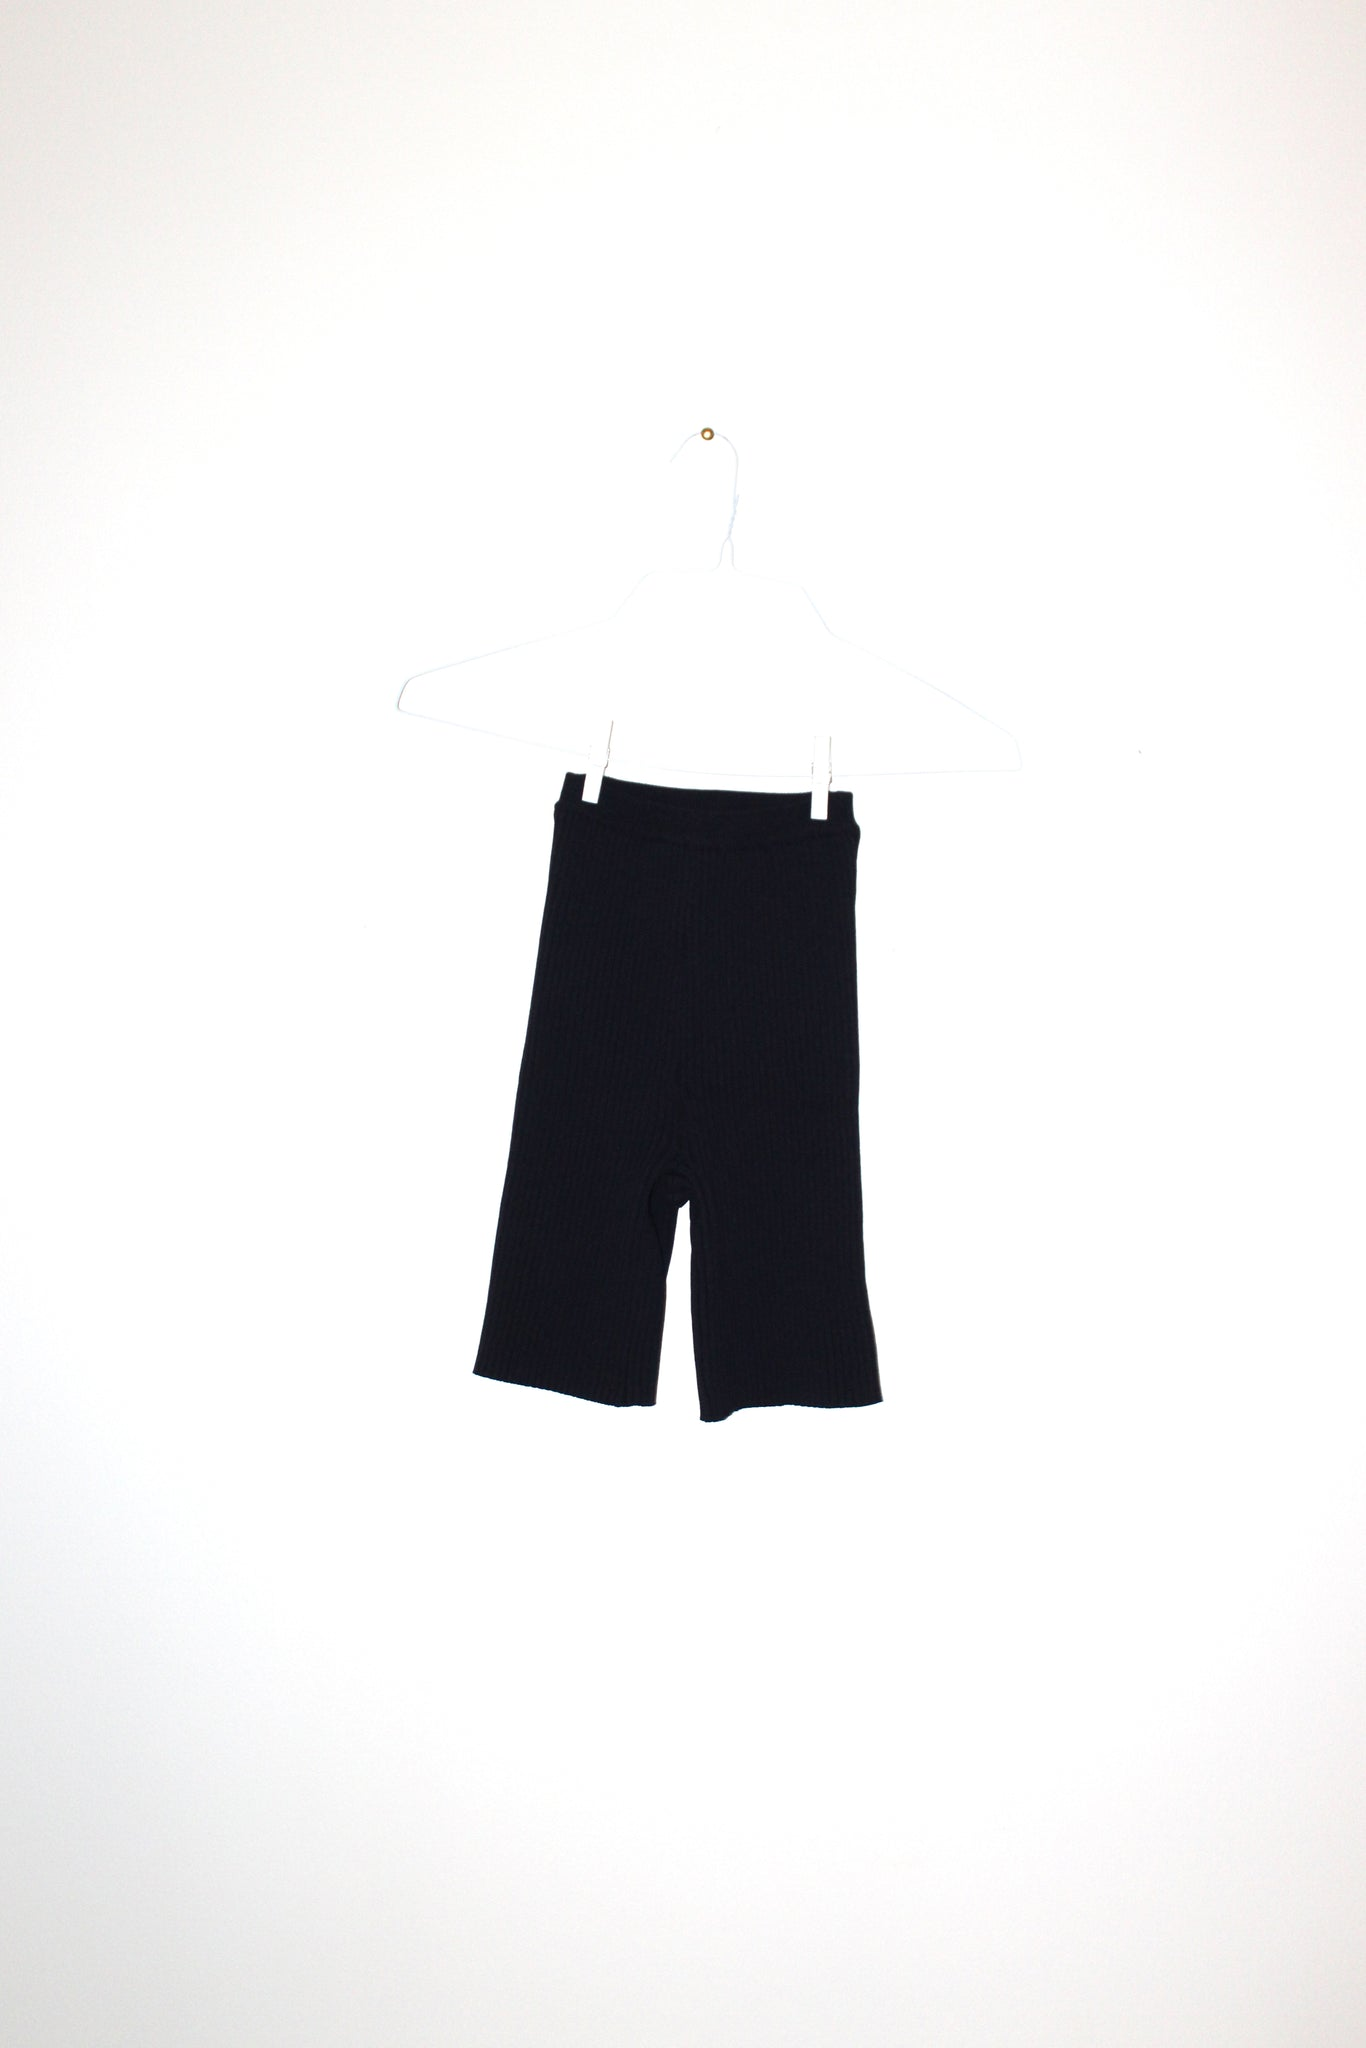 NONNA Sport Short in Onyx